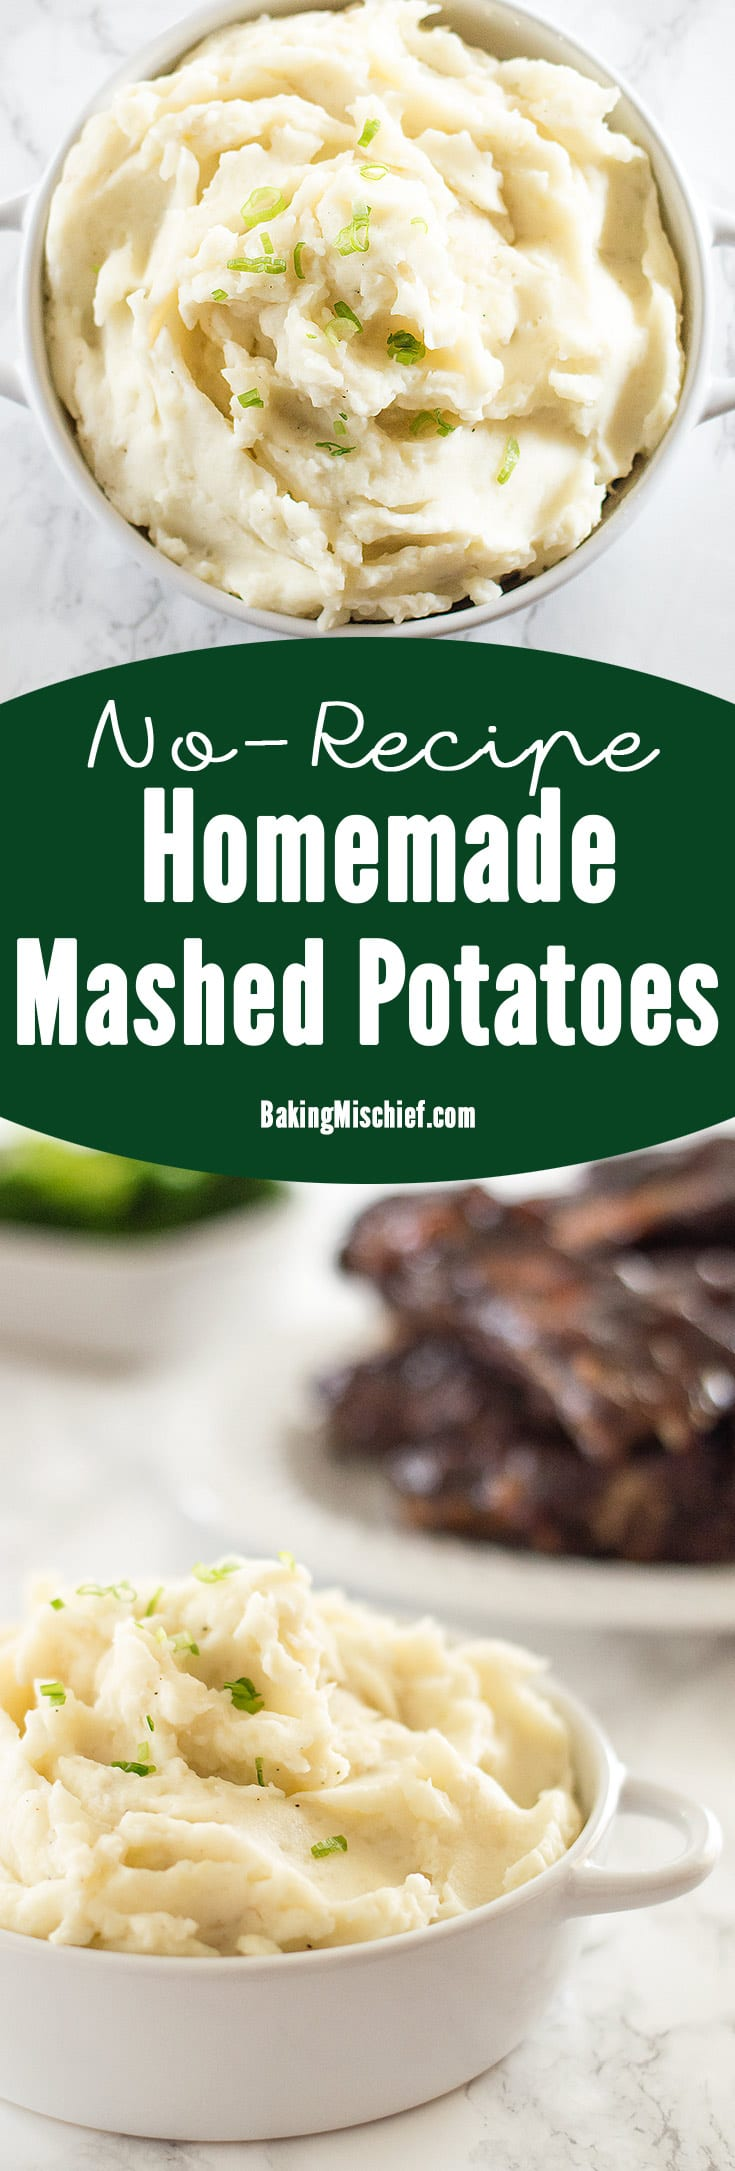 How to make easy homemade mashed potatoes with no recipe required, instructions I wish someone had given me during my childhood of eating boxed mashed potatoes! From BakingMischief.com